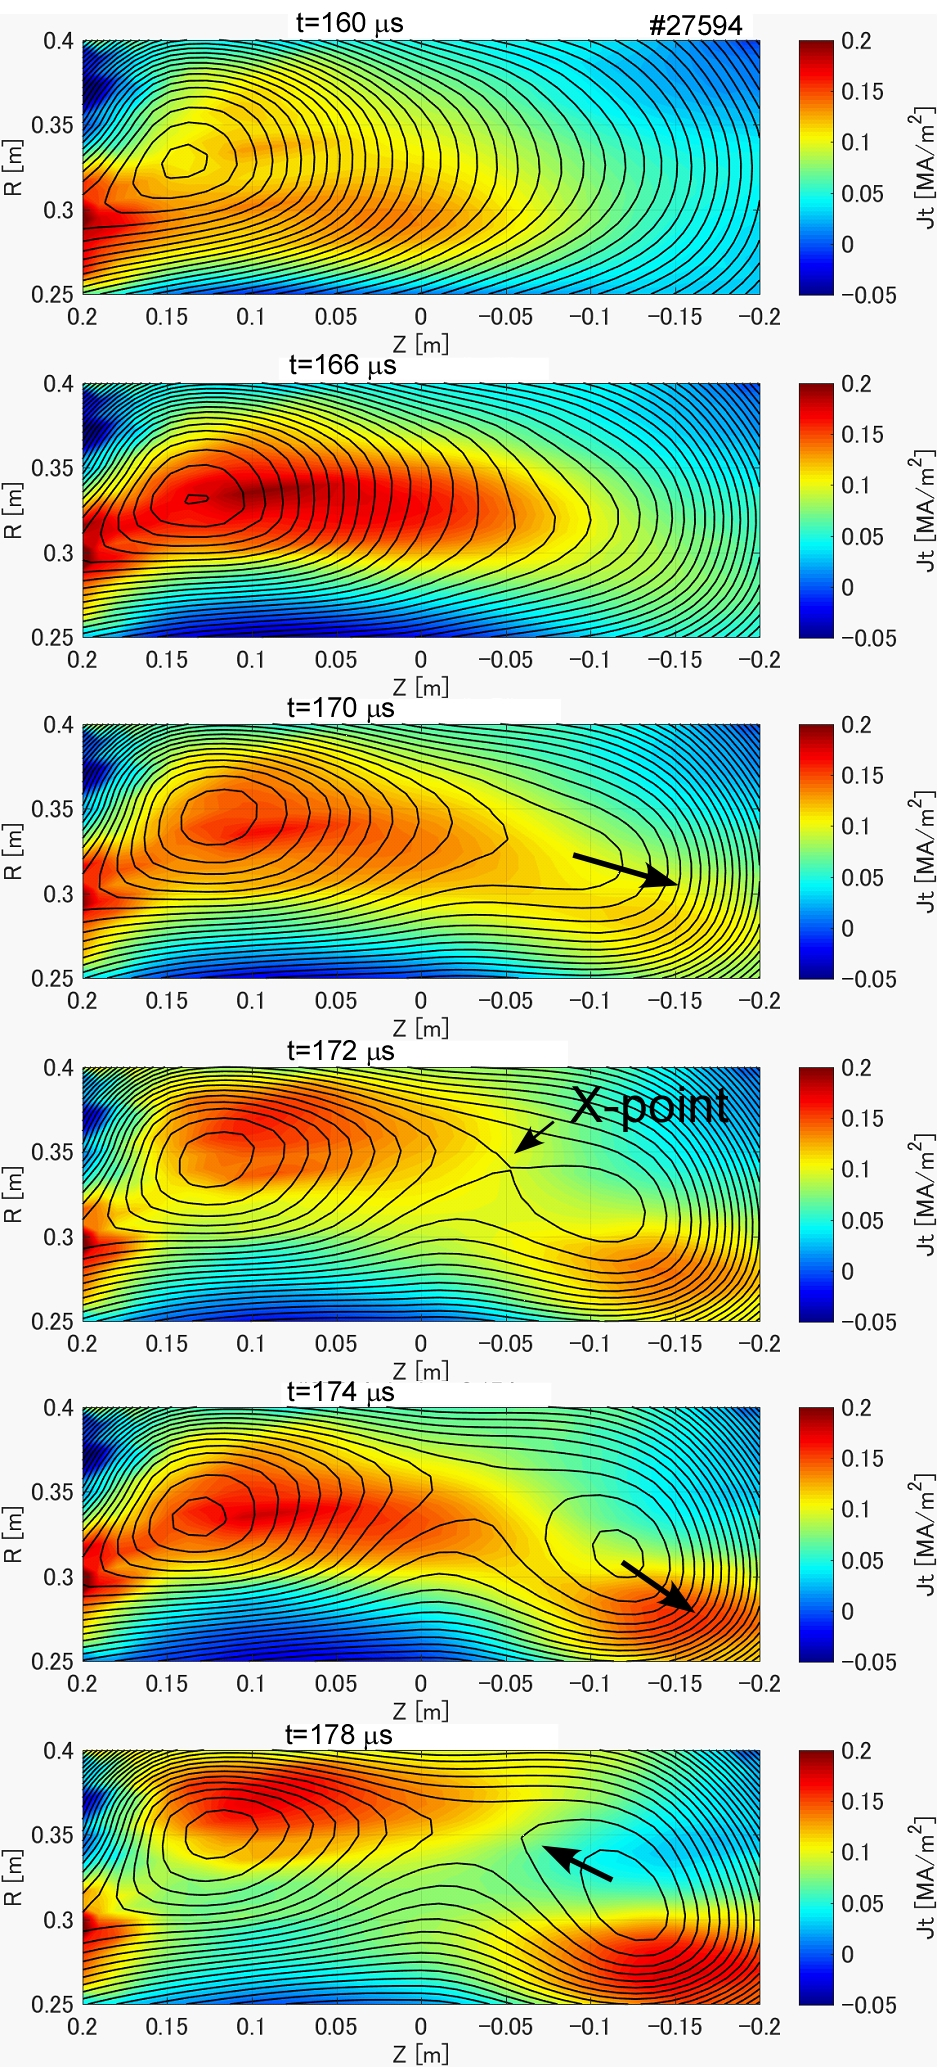 The evolution of the poloidal flux $\Psi_p$ and the current density $J_t$ during the plasmoid formation process.